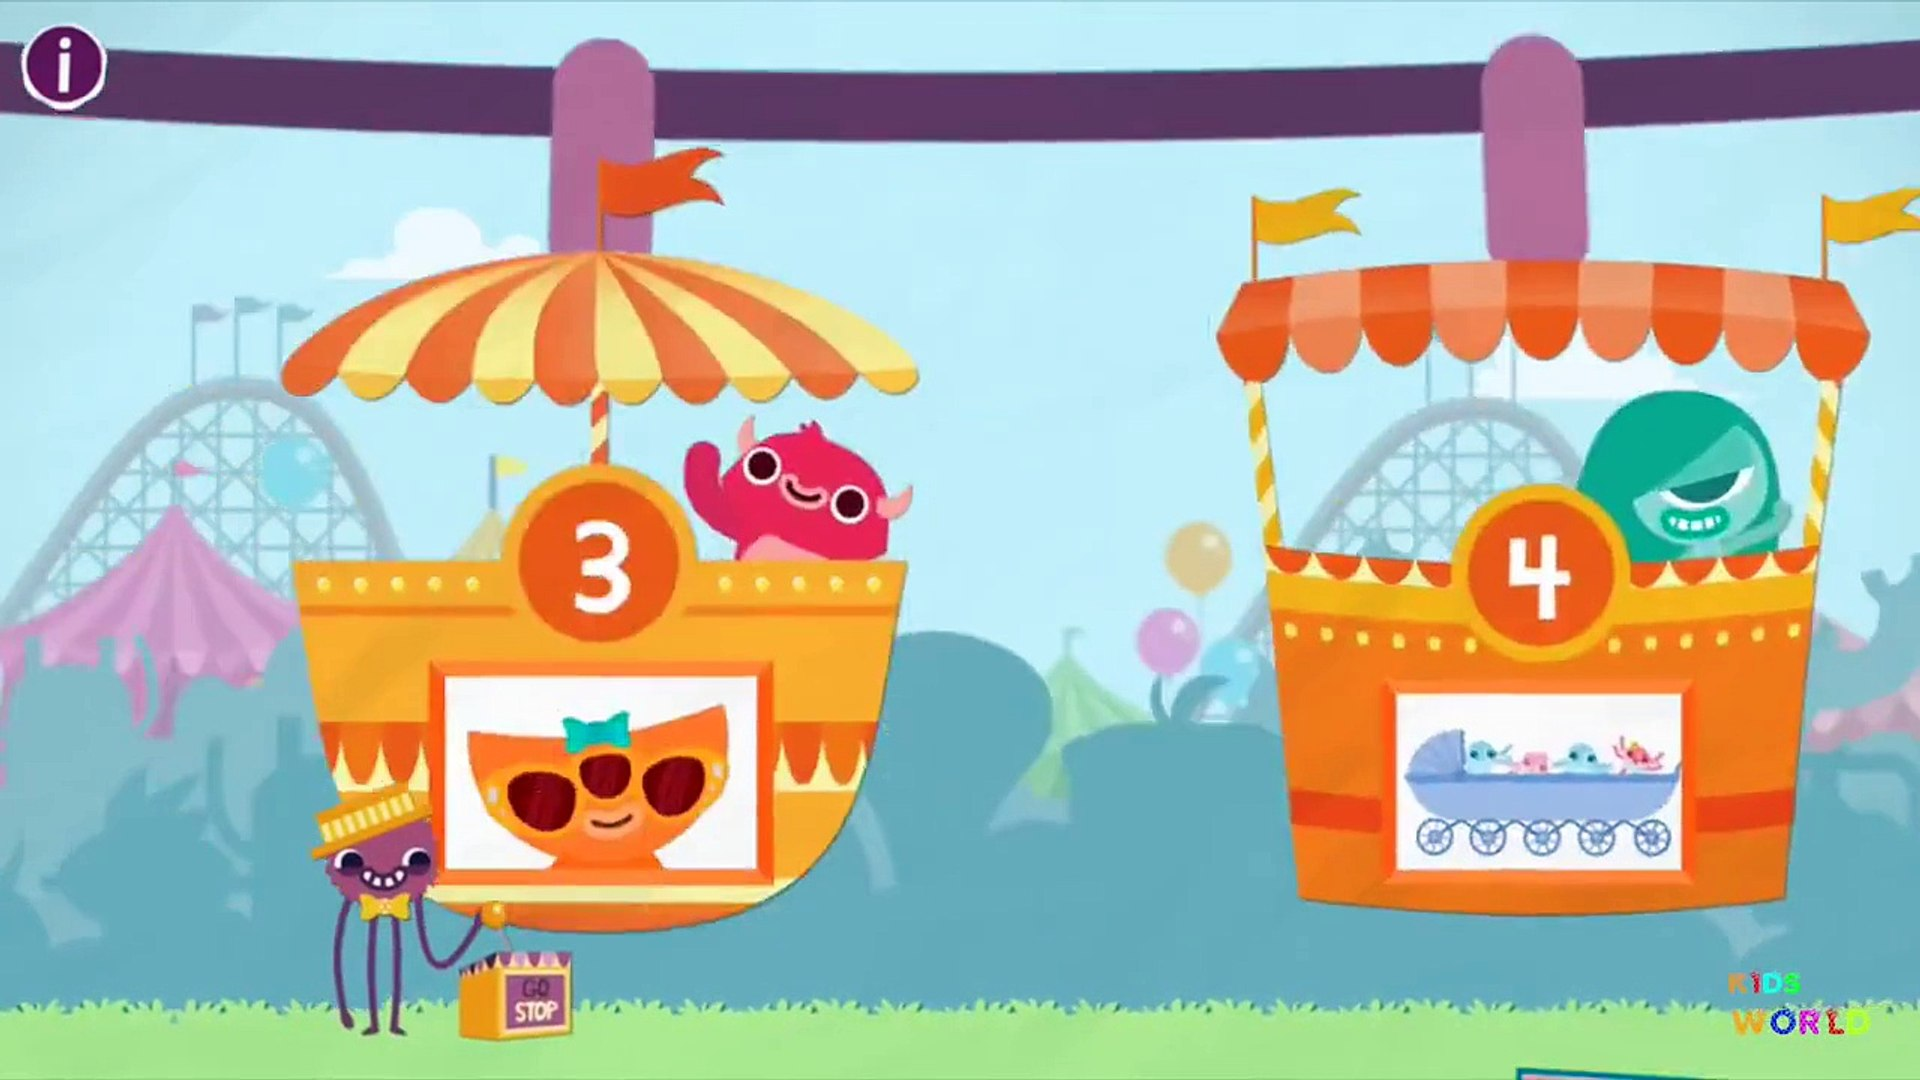 Endless Number, Kids Education Apps, Learn to Count to 10